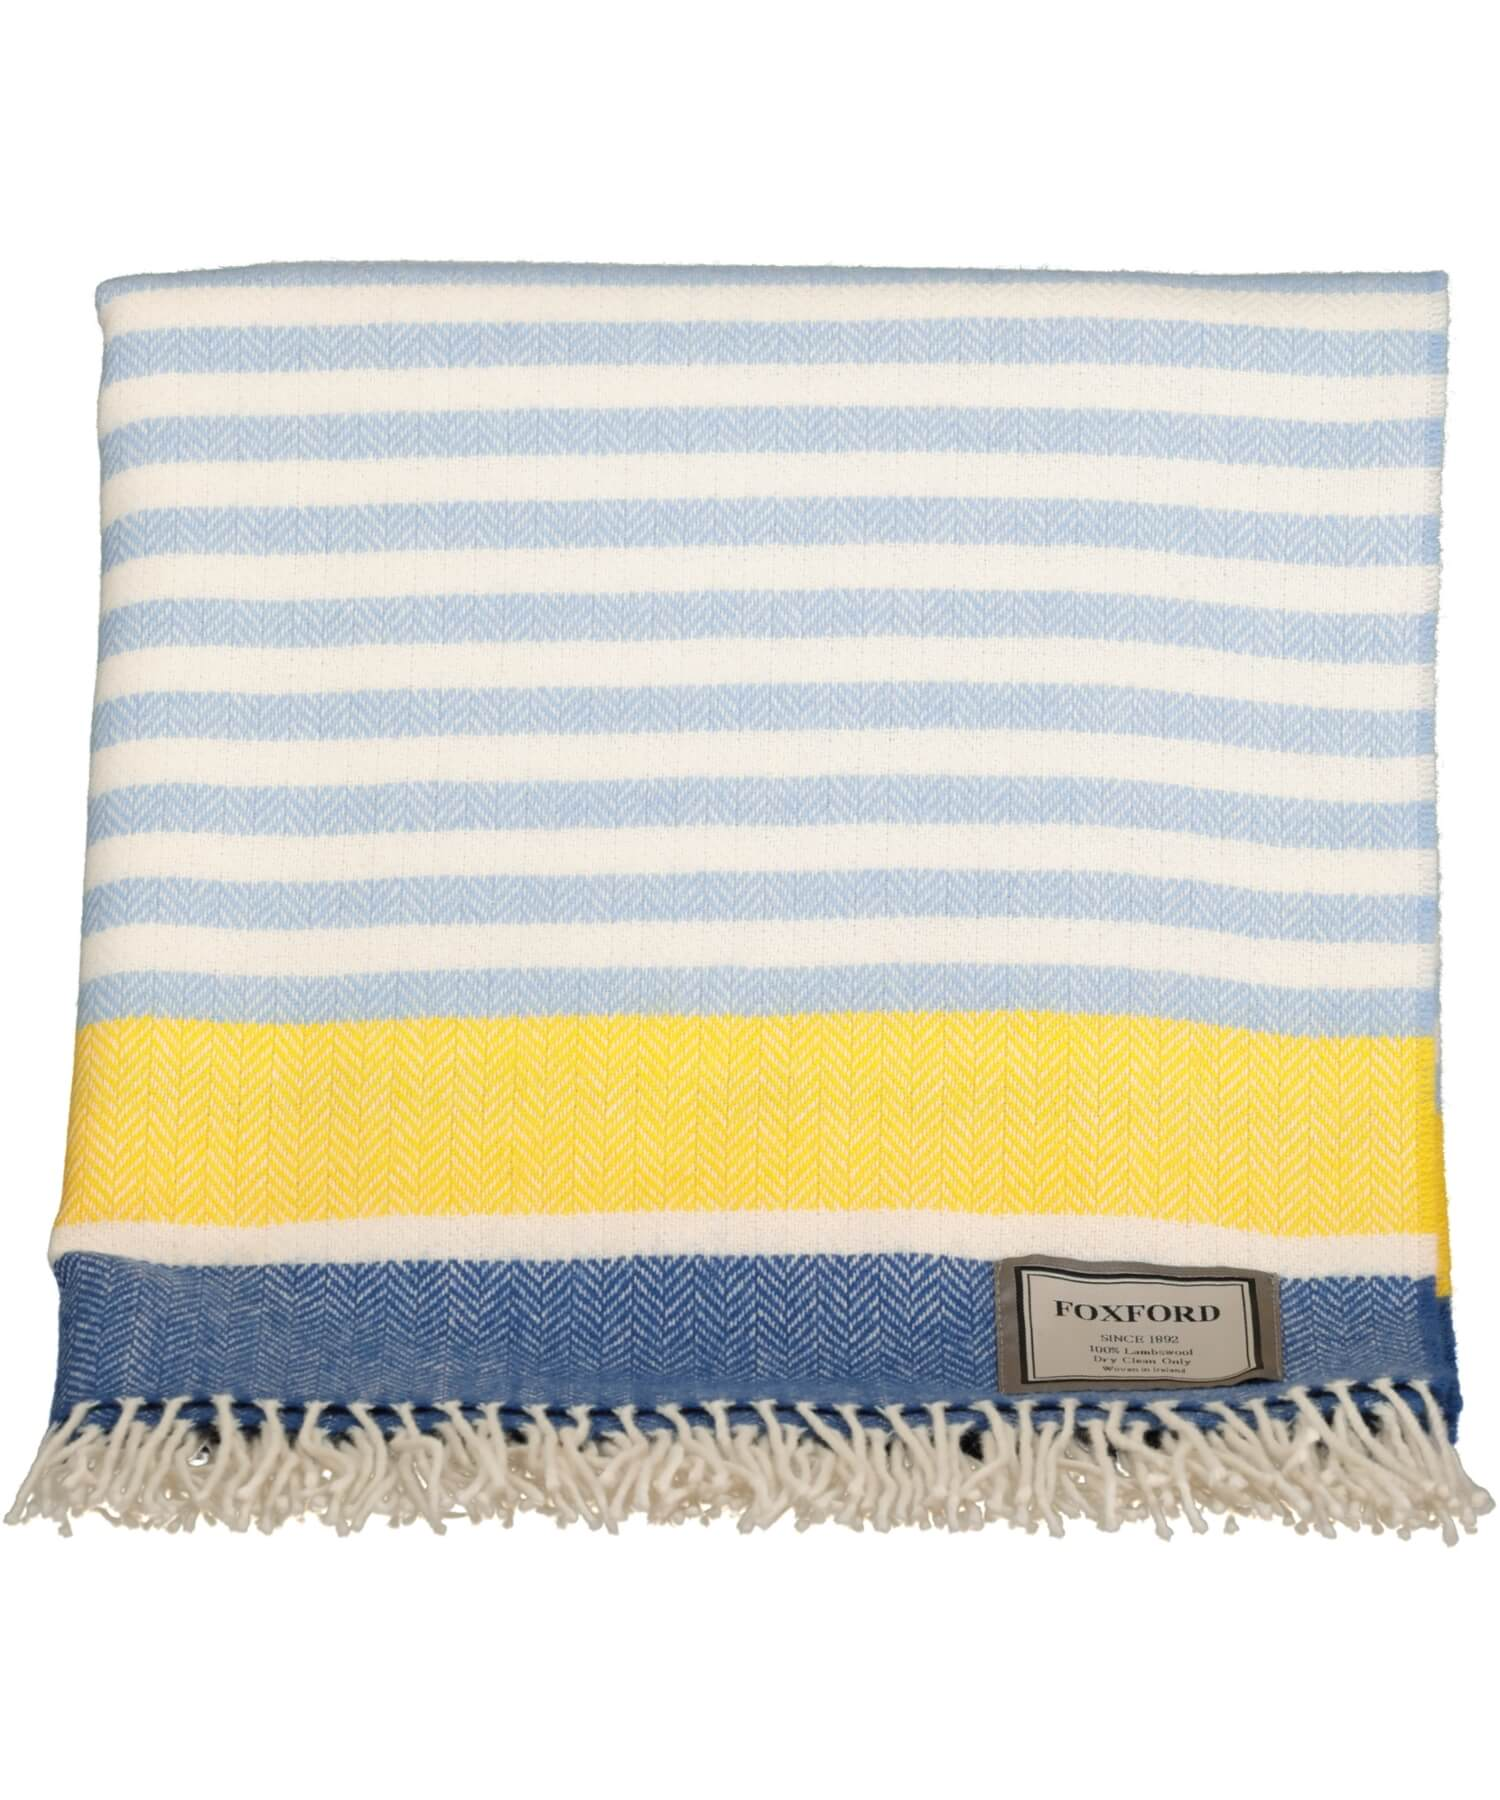 Lambswool Throw - Inisturk - [Foxford] - Throws & Cushions - Irish Gifts